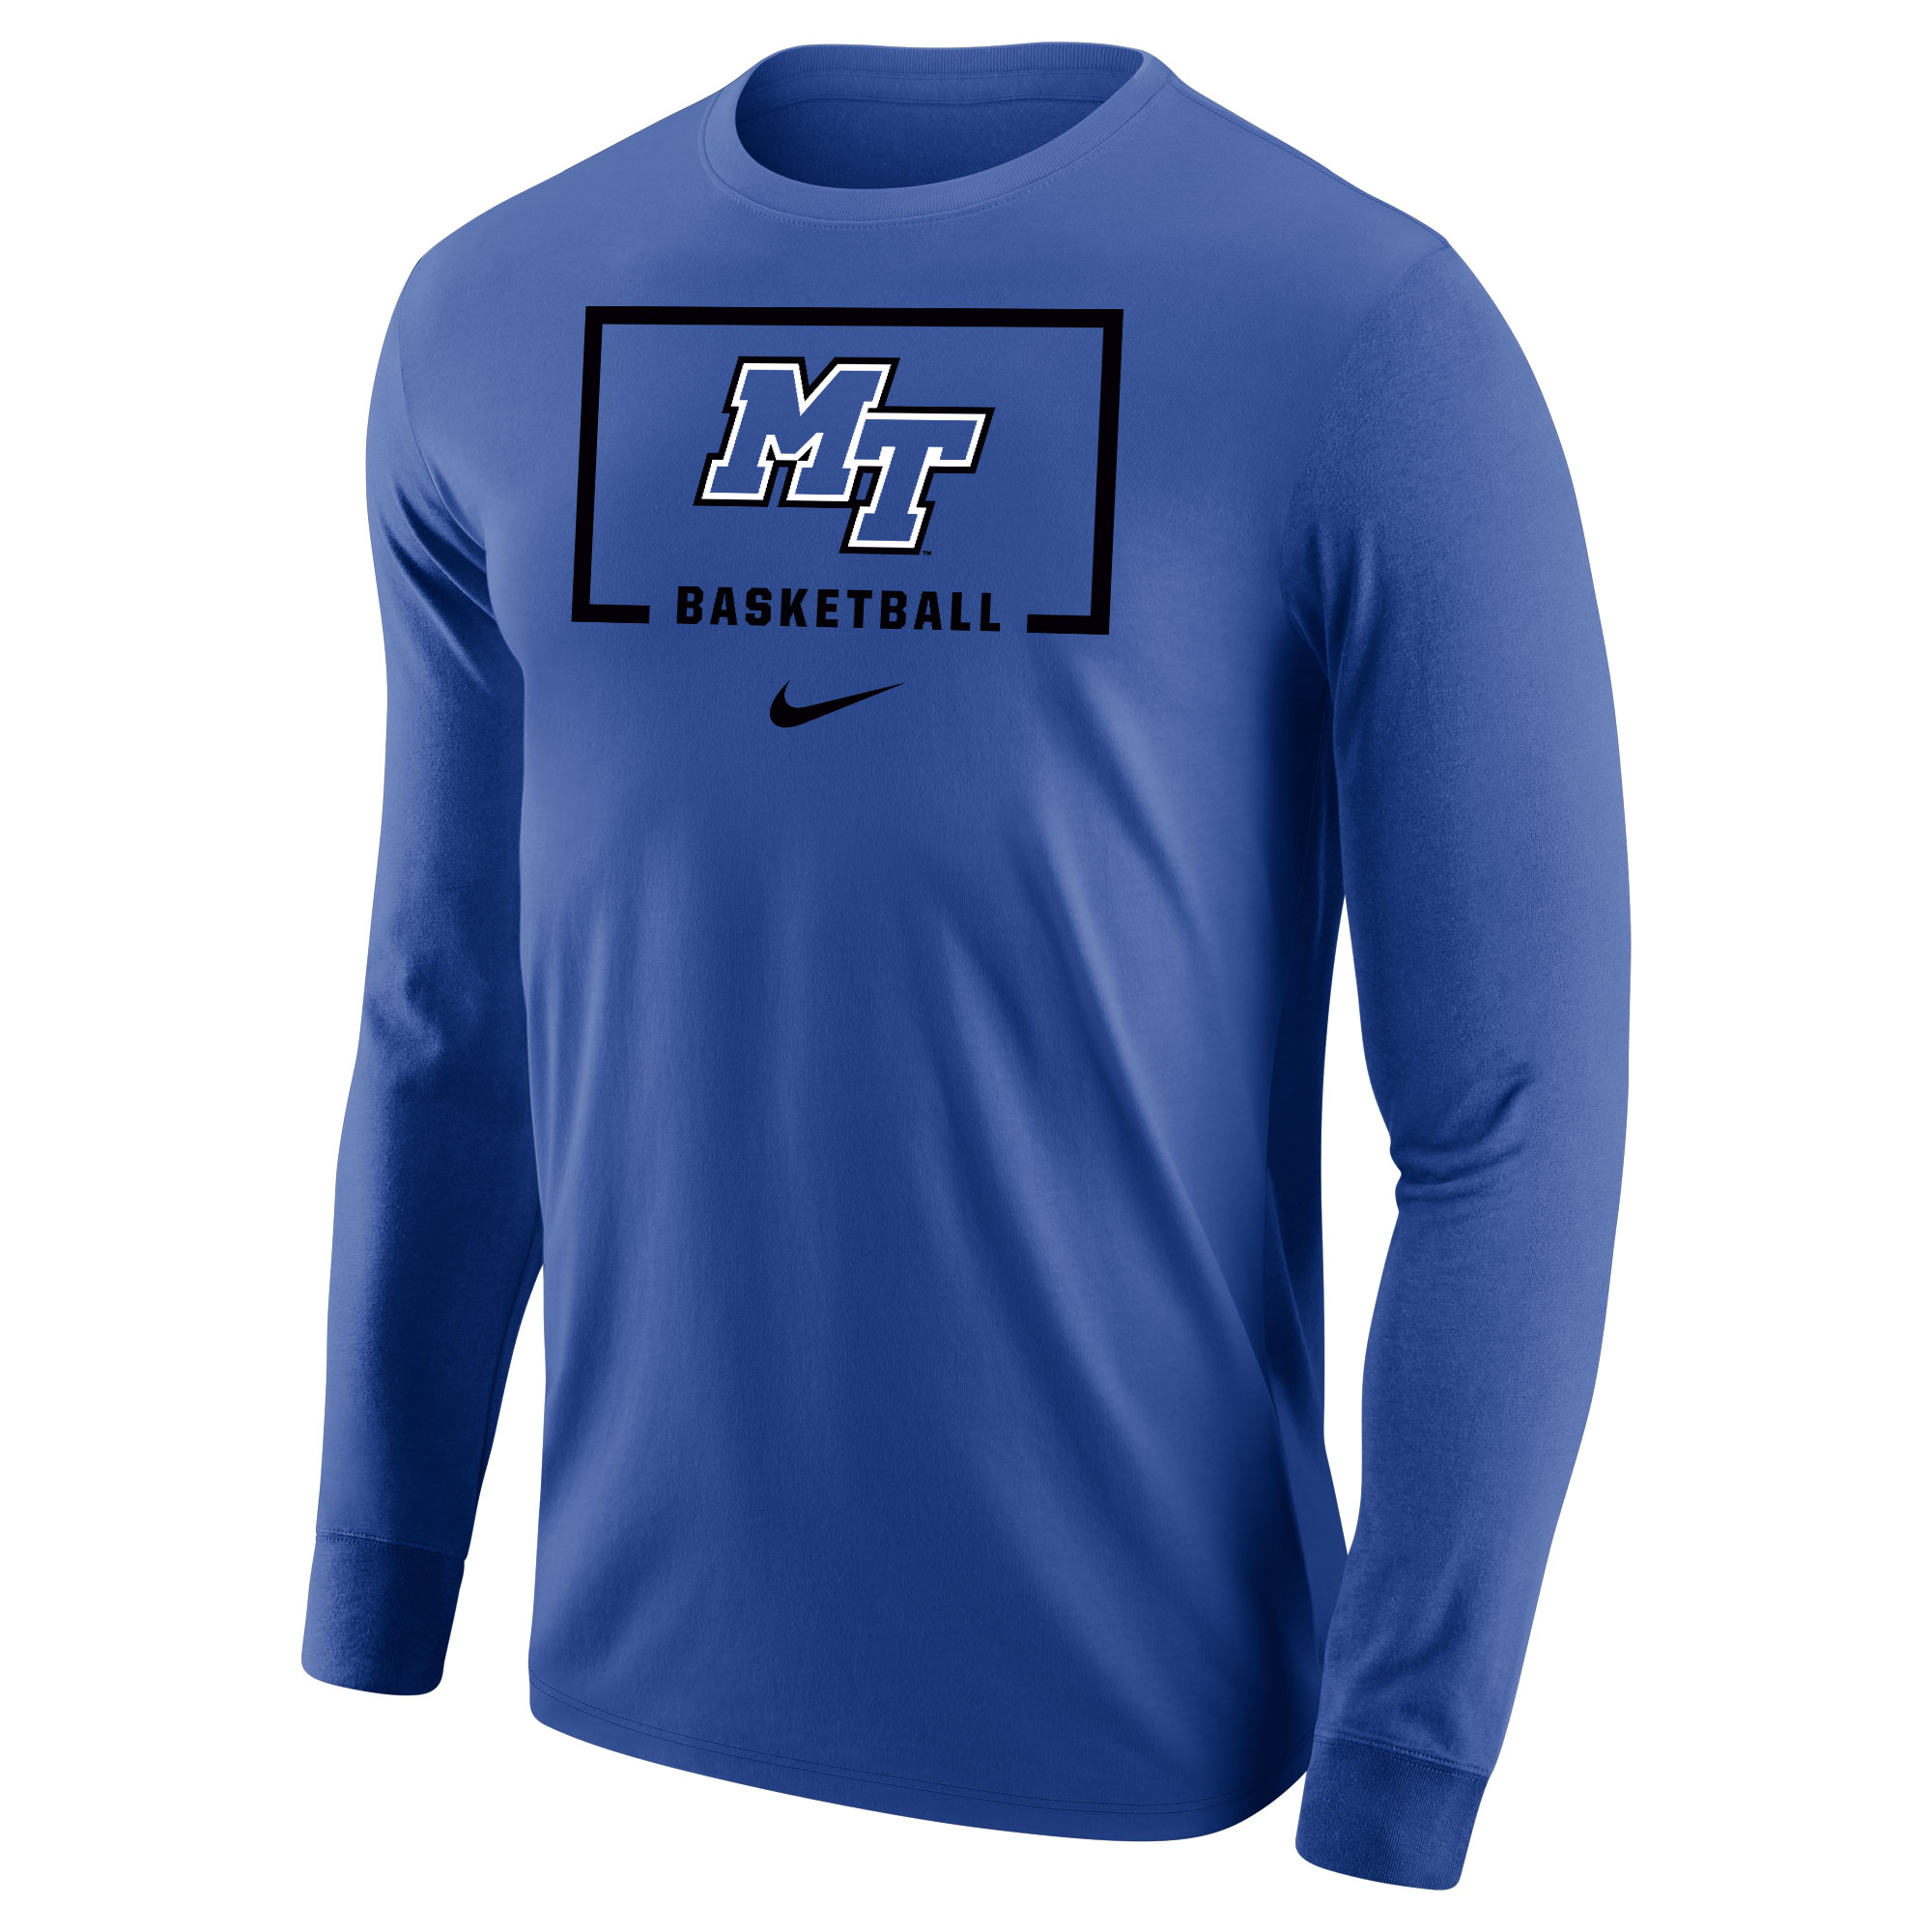 MT Basketball Core Long Sleeve Shirt